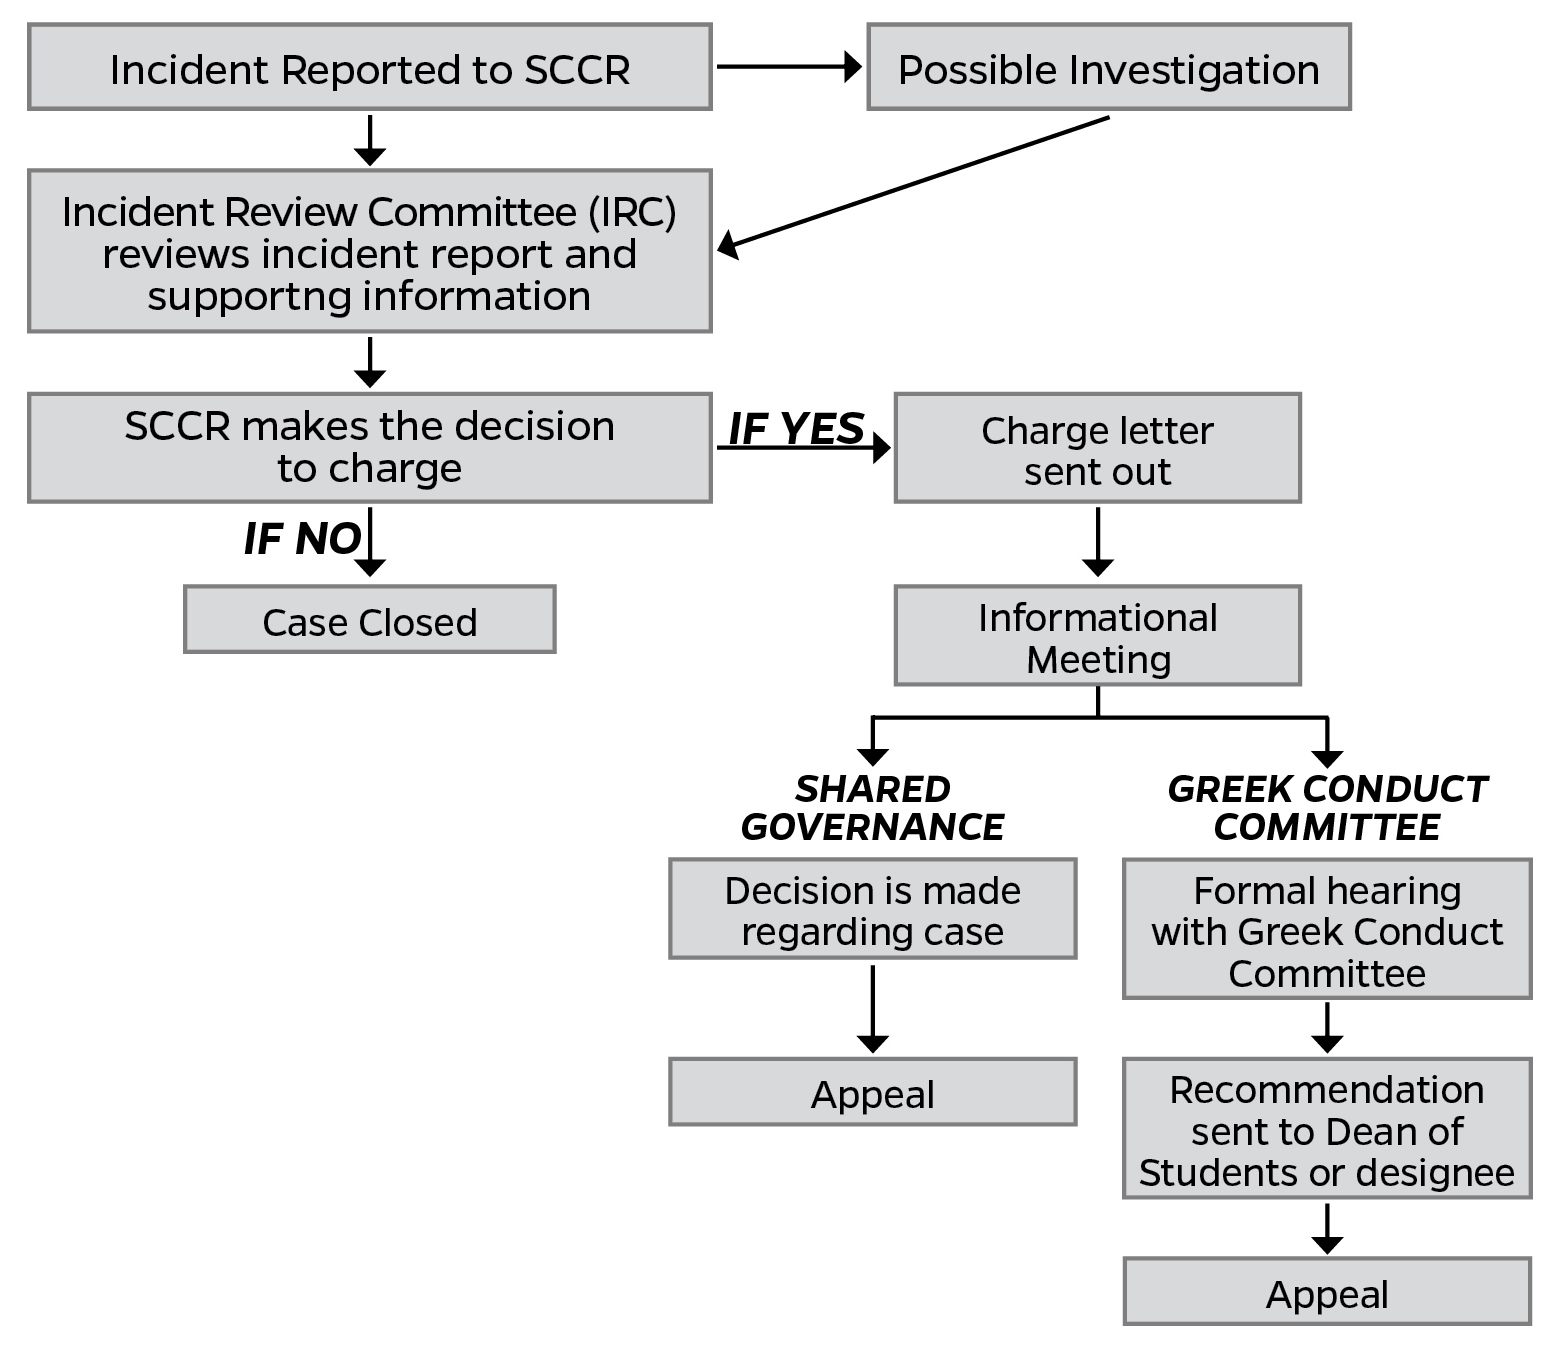 This is an image depicting the conduct process for social Greek letter student organizations, as explained in Student Conduct Code and Student Honor Code. In summary, once an incident is reported to the Student Conduct and Conflict Resolution (SCCR), it will go to the Incident Review Committee (IRC) for review of the incident report and the supporting information. The incident may need possible investigation before going to the IRC. After the IRC reviews, SCCR will make the decision to charge. If they decide not to charge, the case is closed. If they decide to charge, a charge letter will be issued out. Then an informational meeting will be scheduled. From the informational meeting, the proceedings will either follow shared governance or go to the Greek Conduct Committee. Through shared governance, a decision will be made regarding the case. Decisions can be appealed. Through the Greek Conduct Committee, a formal hearing will be scheduled. After the hearing, a recommendation will be sent to the Dean of Students or designee for a decision. Decisions can be appealed.